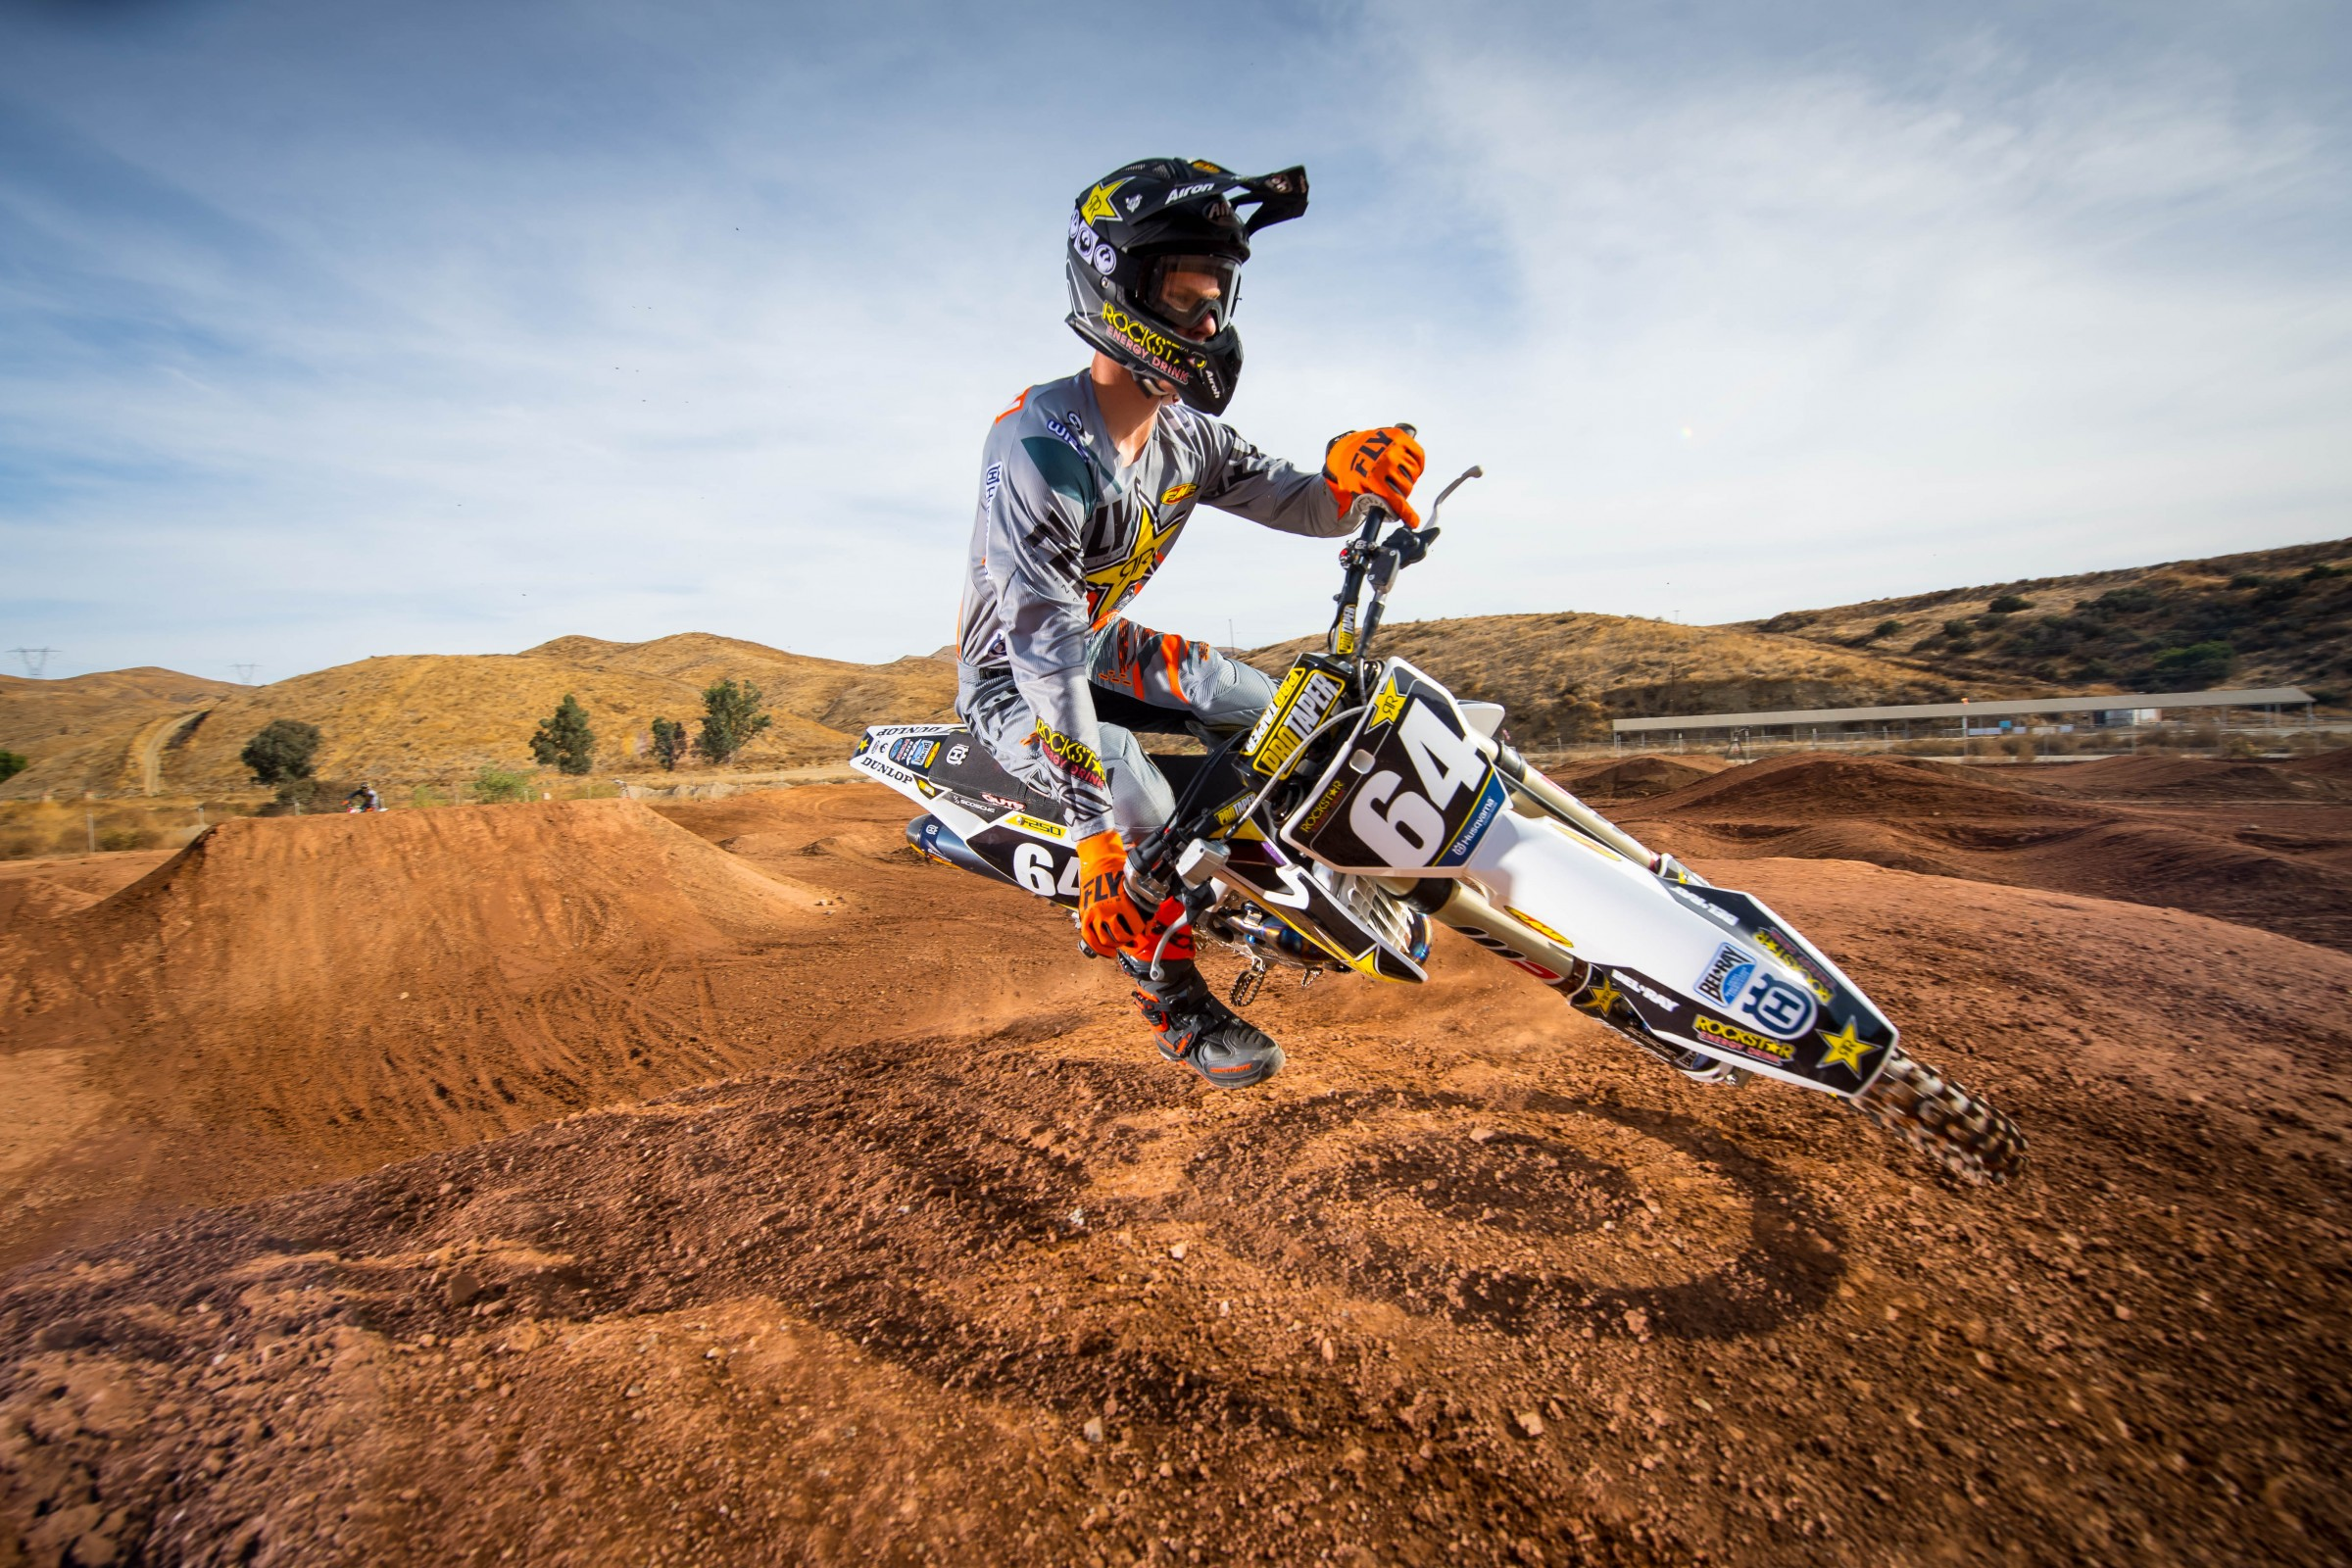 Mosiman missed the majority of the 2017 Lucas Oil Pro Motocross Championship, but will have another chance to compete for Rockstar Energy Husqvarna this year.